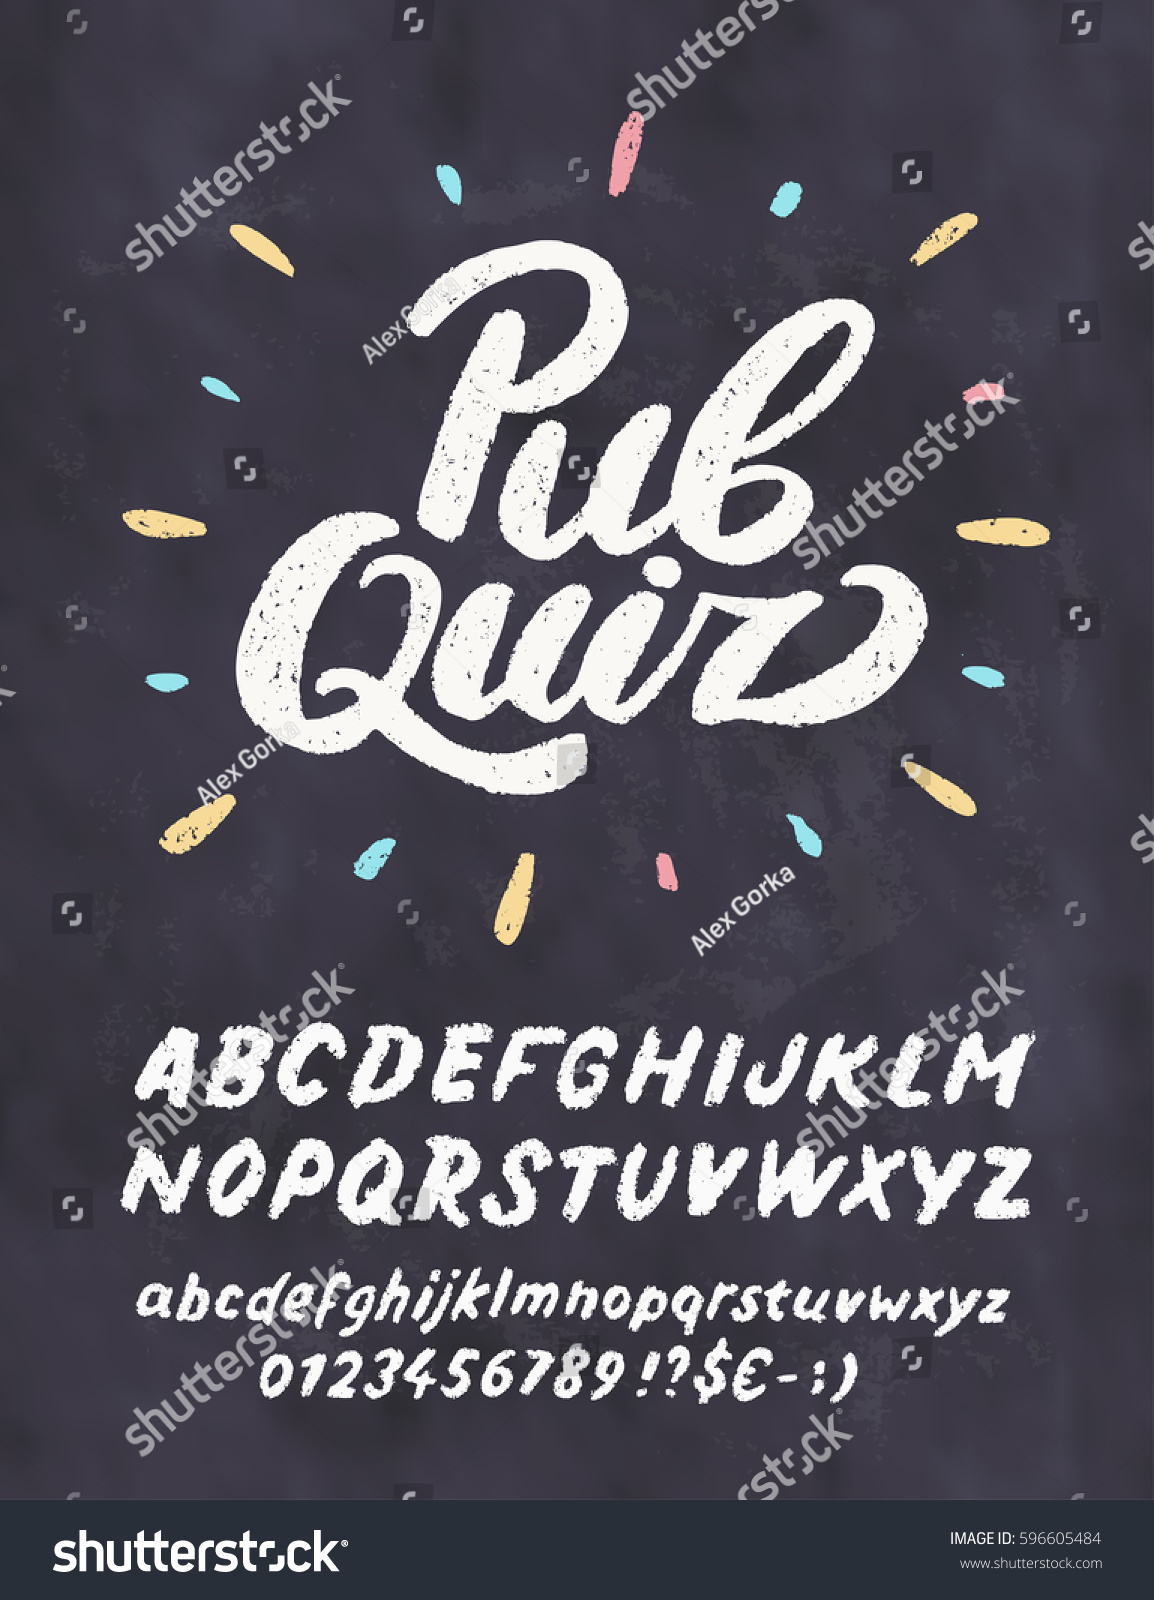 Pub Quiz Chalkboard Sign Template Stock Vector HD Royalty Free - Chalkboard sign template